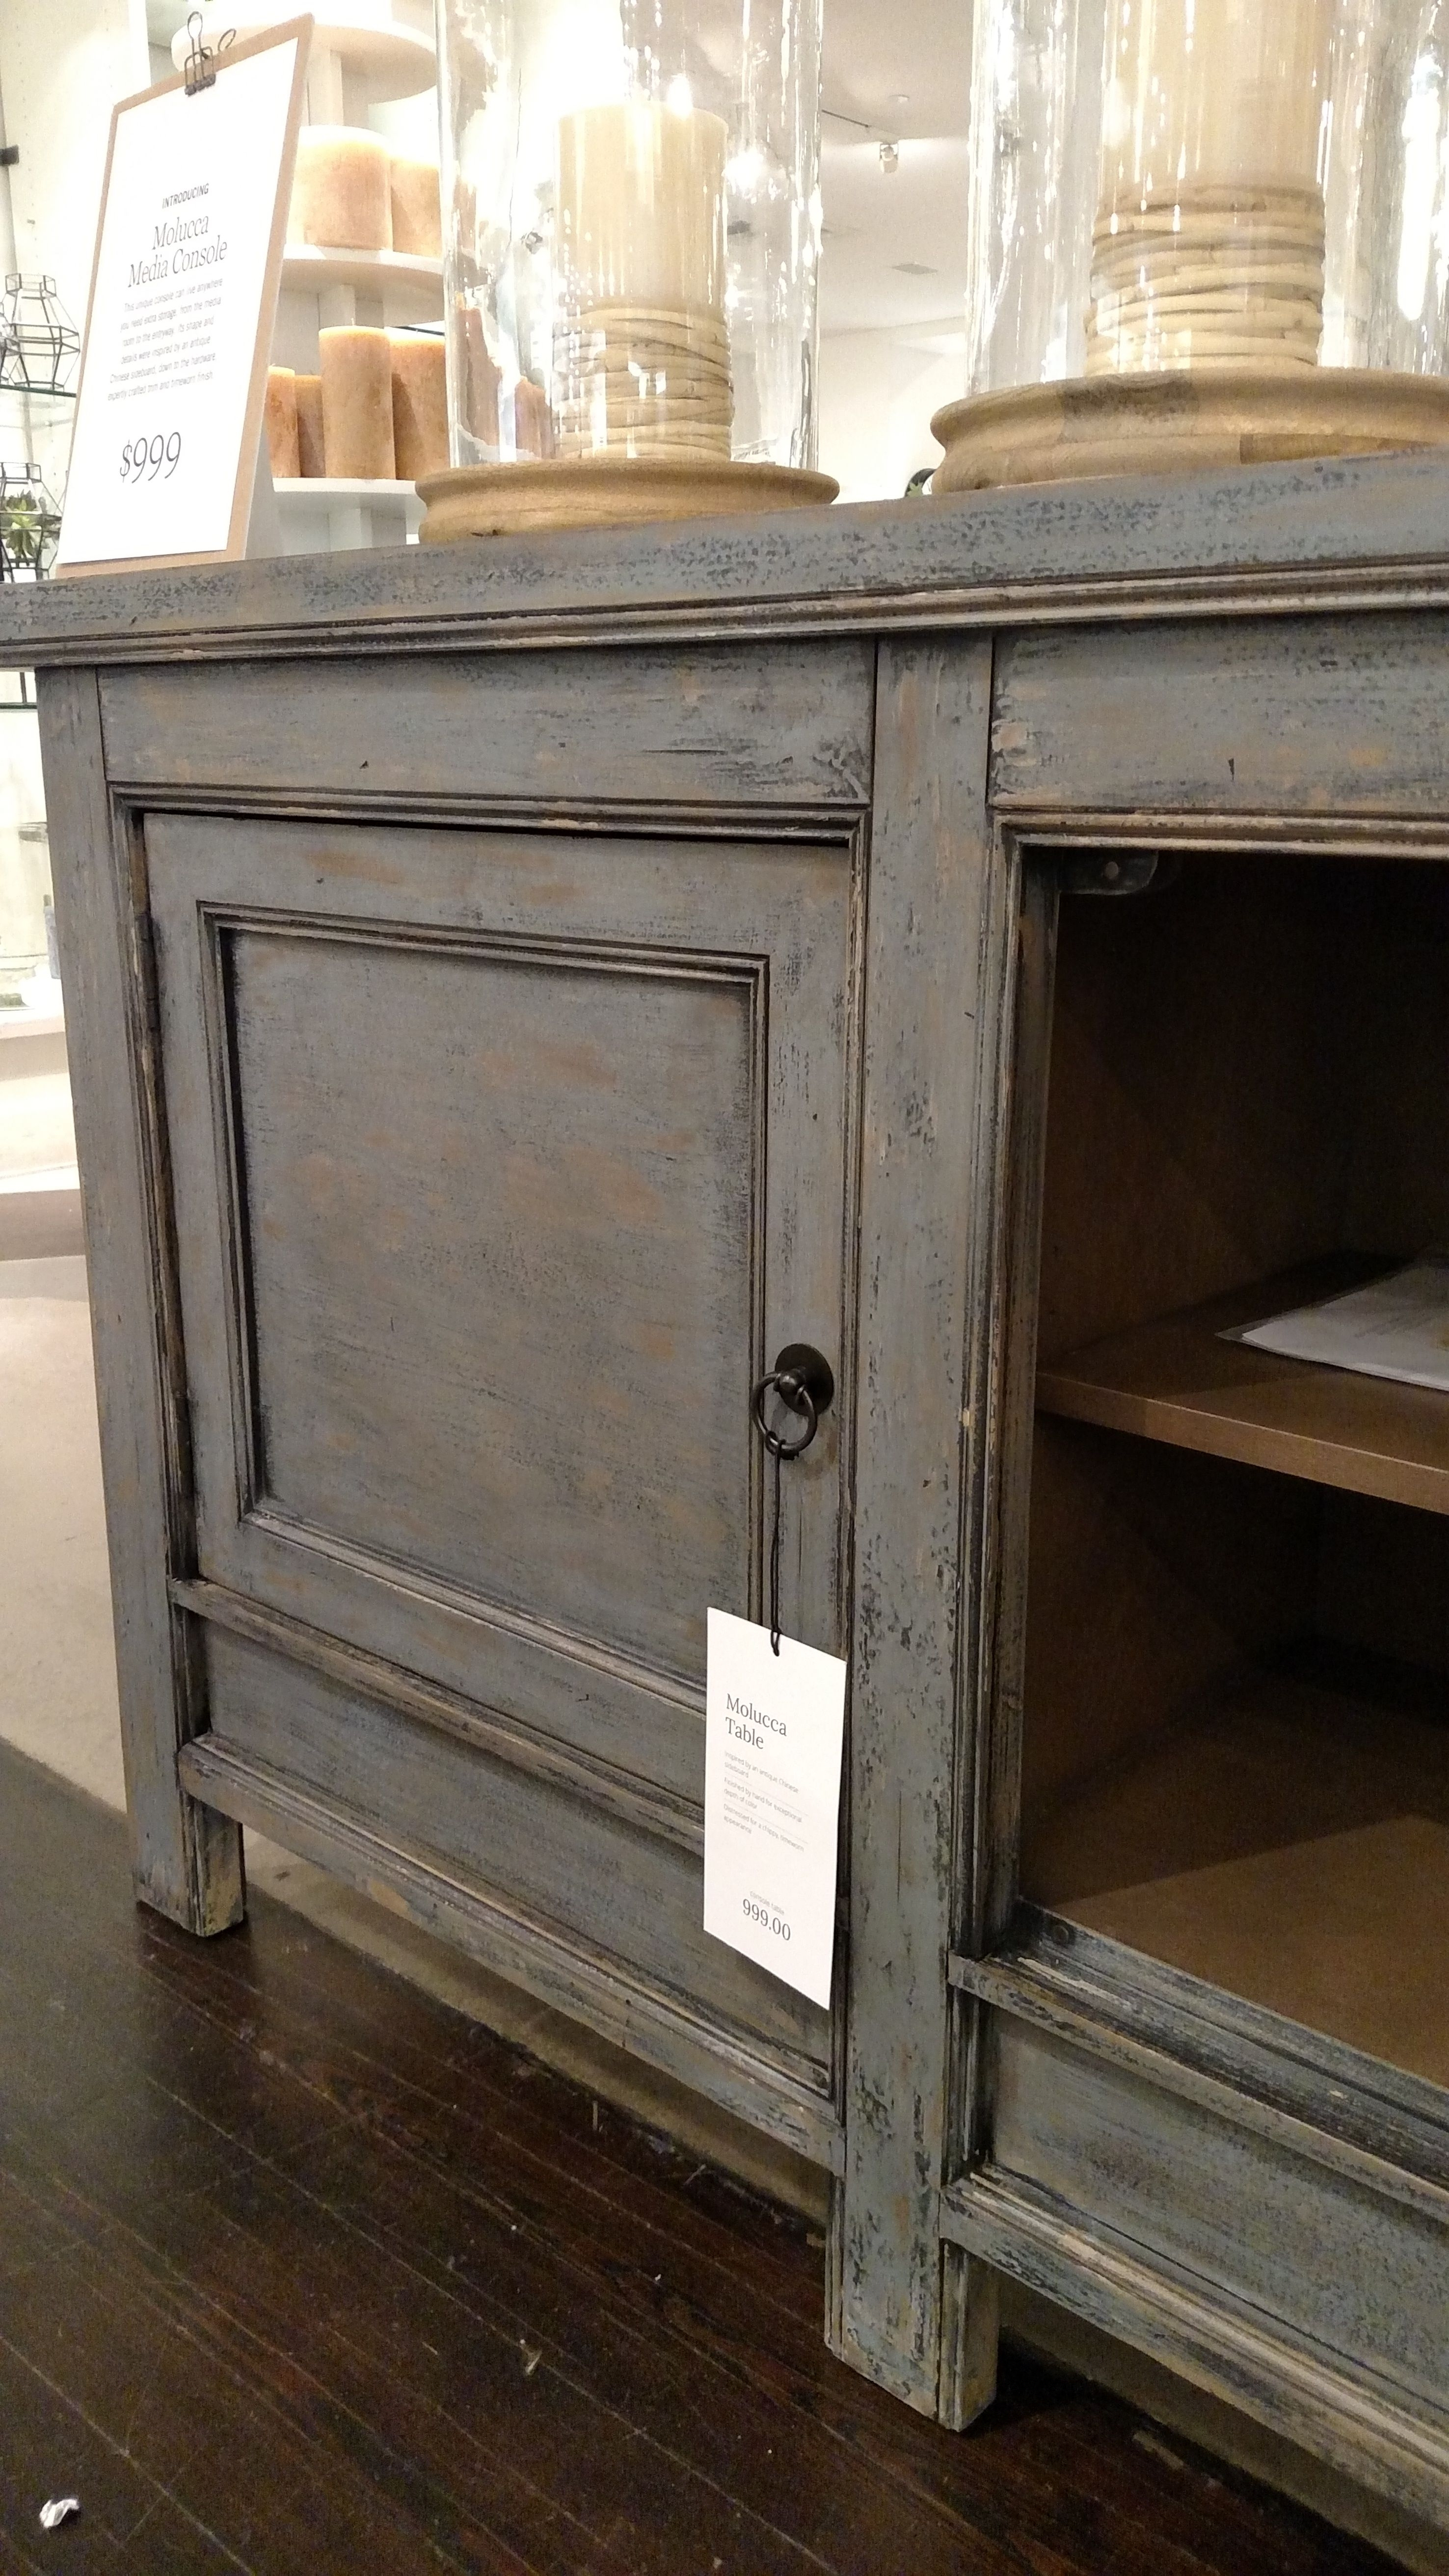 Pottery Barn Molucca Media Console Table Cabinet Buffet Sideboard inside Blue Stone Light Rustic Black Sideboards (Image 21 of 30)